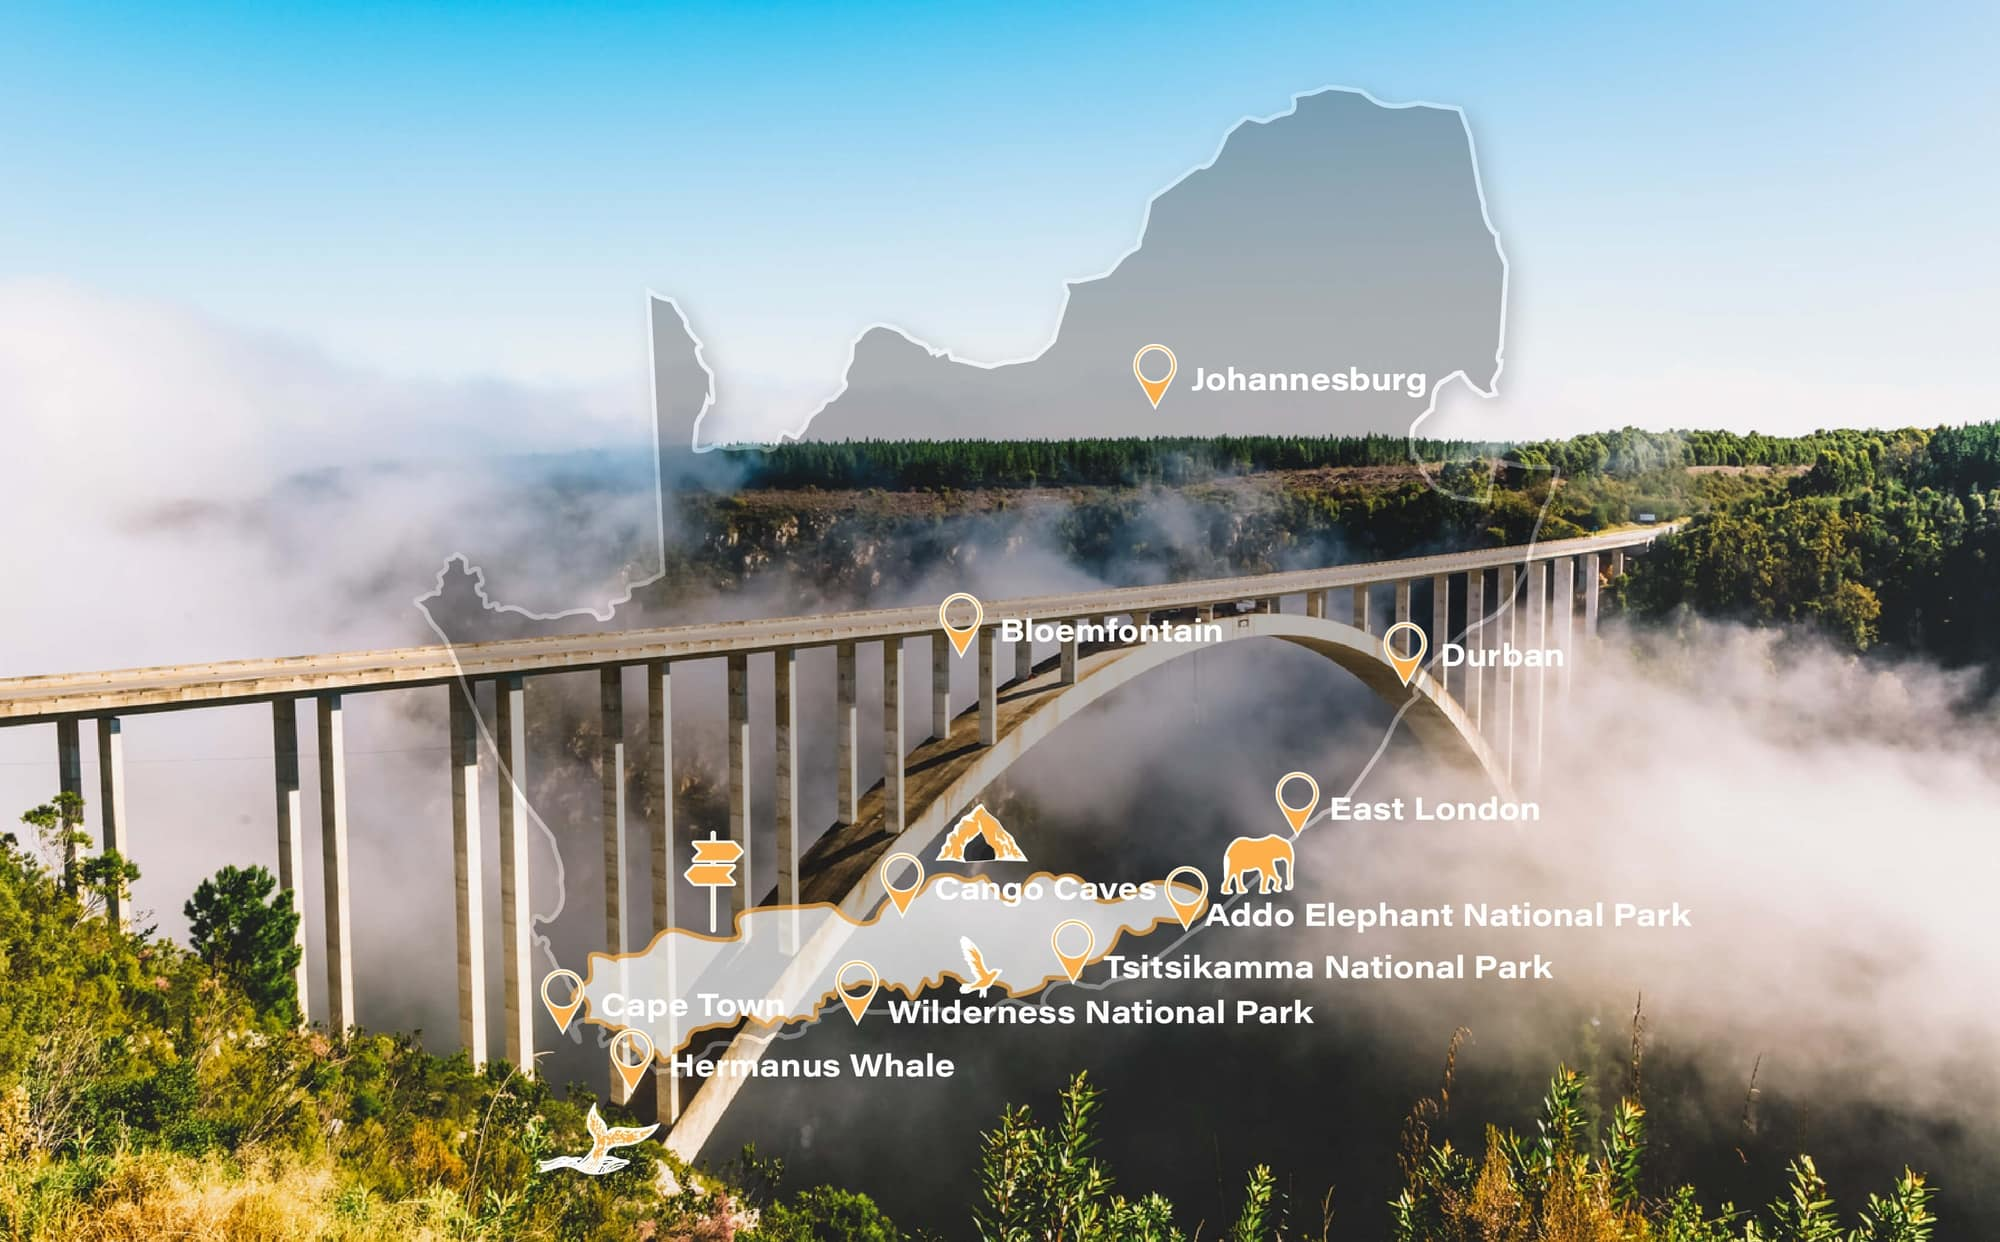 Flipsvanz Adventures-van life experience-south africa-6 day adventure-garden route-route 62-adventure-addo elephant national park-guided tour in a van-van travel south africa-bronwyn filippa-vanlife-sleep in a van